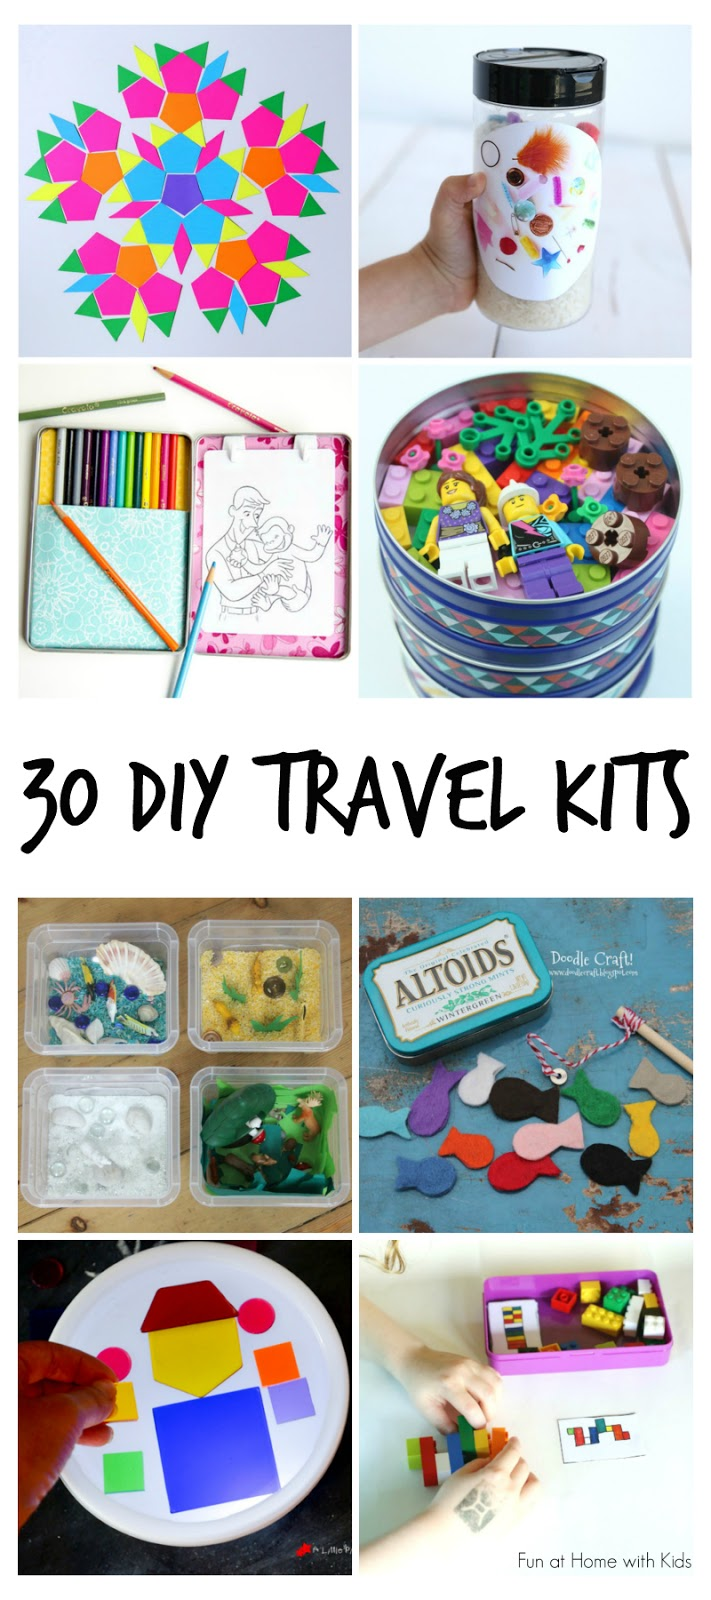 30 Diy Portable Travel Kits For Entertaining Kids On The Go Fun Electronics Learning Circuits Stem Homeschooling Pinterest